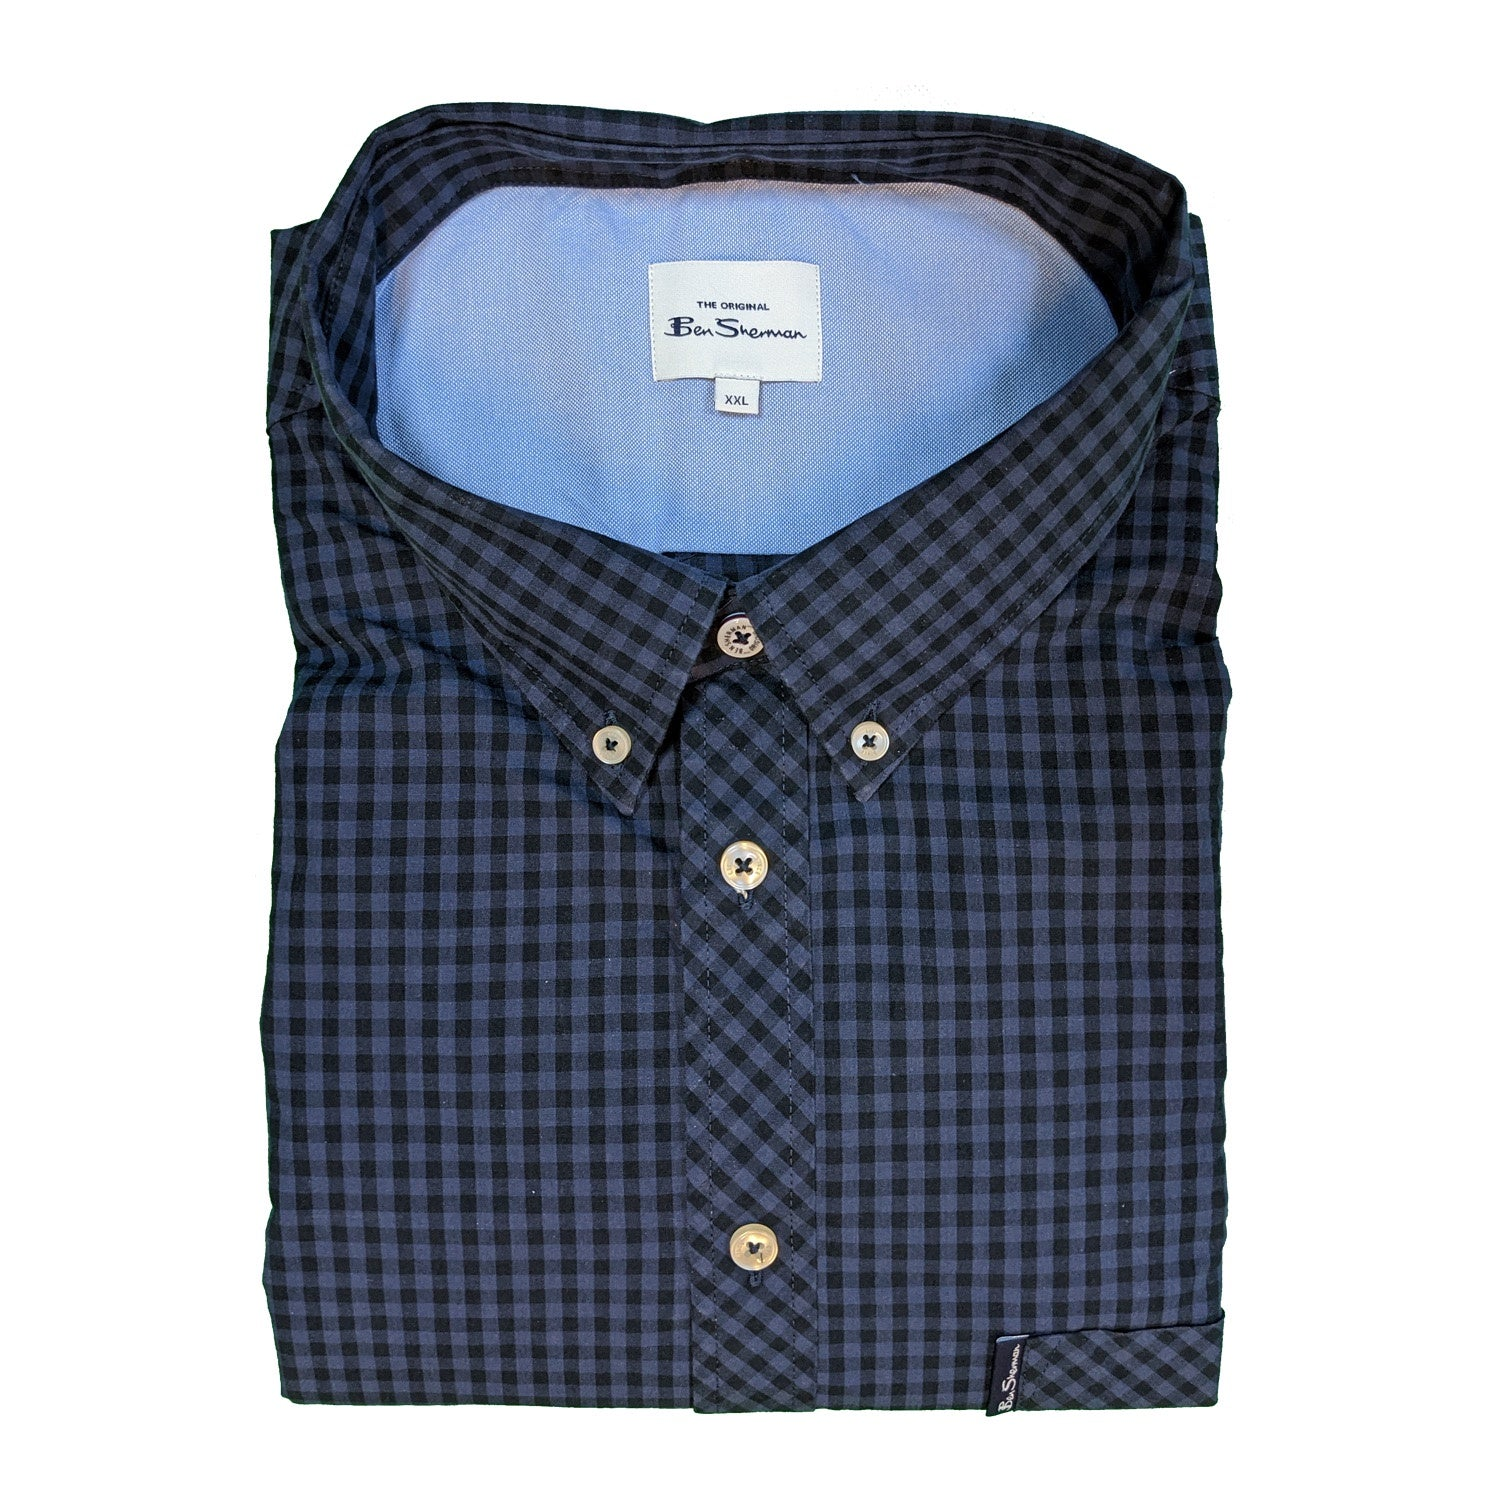 Ben Sherman S/S Shirt - 0059142IL - Blue / Grey 1